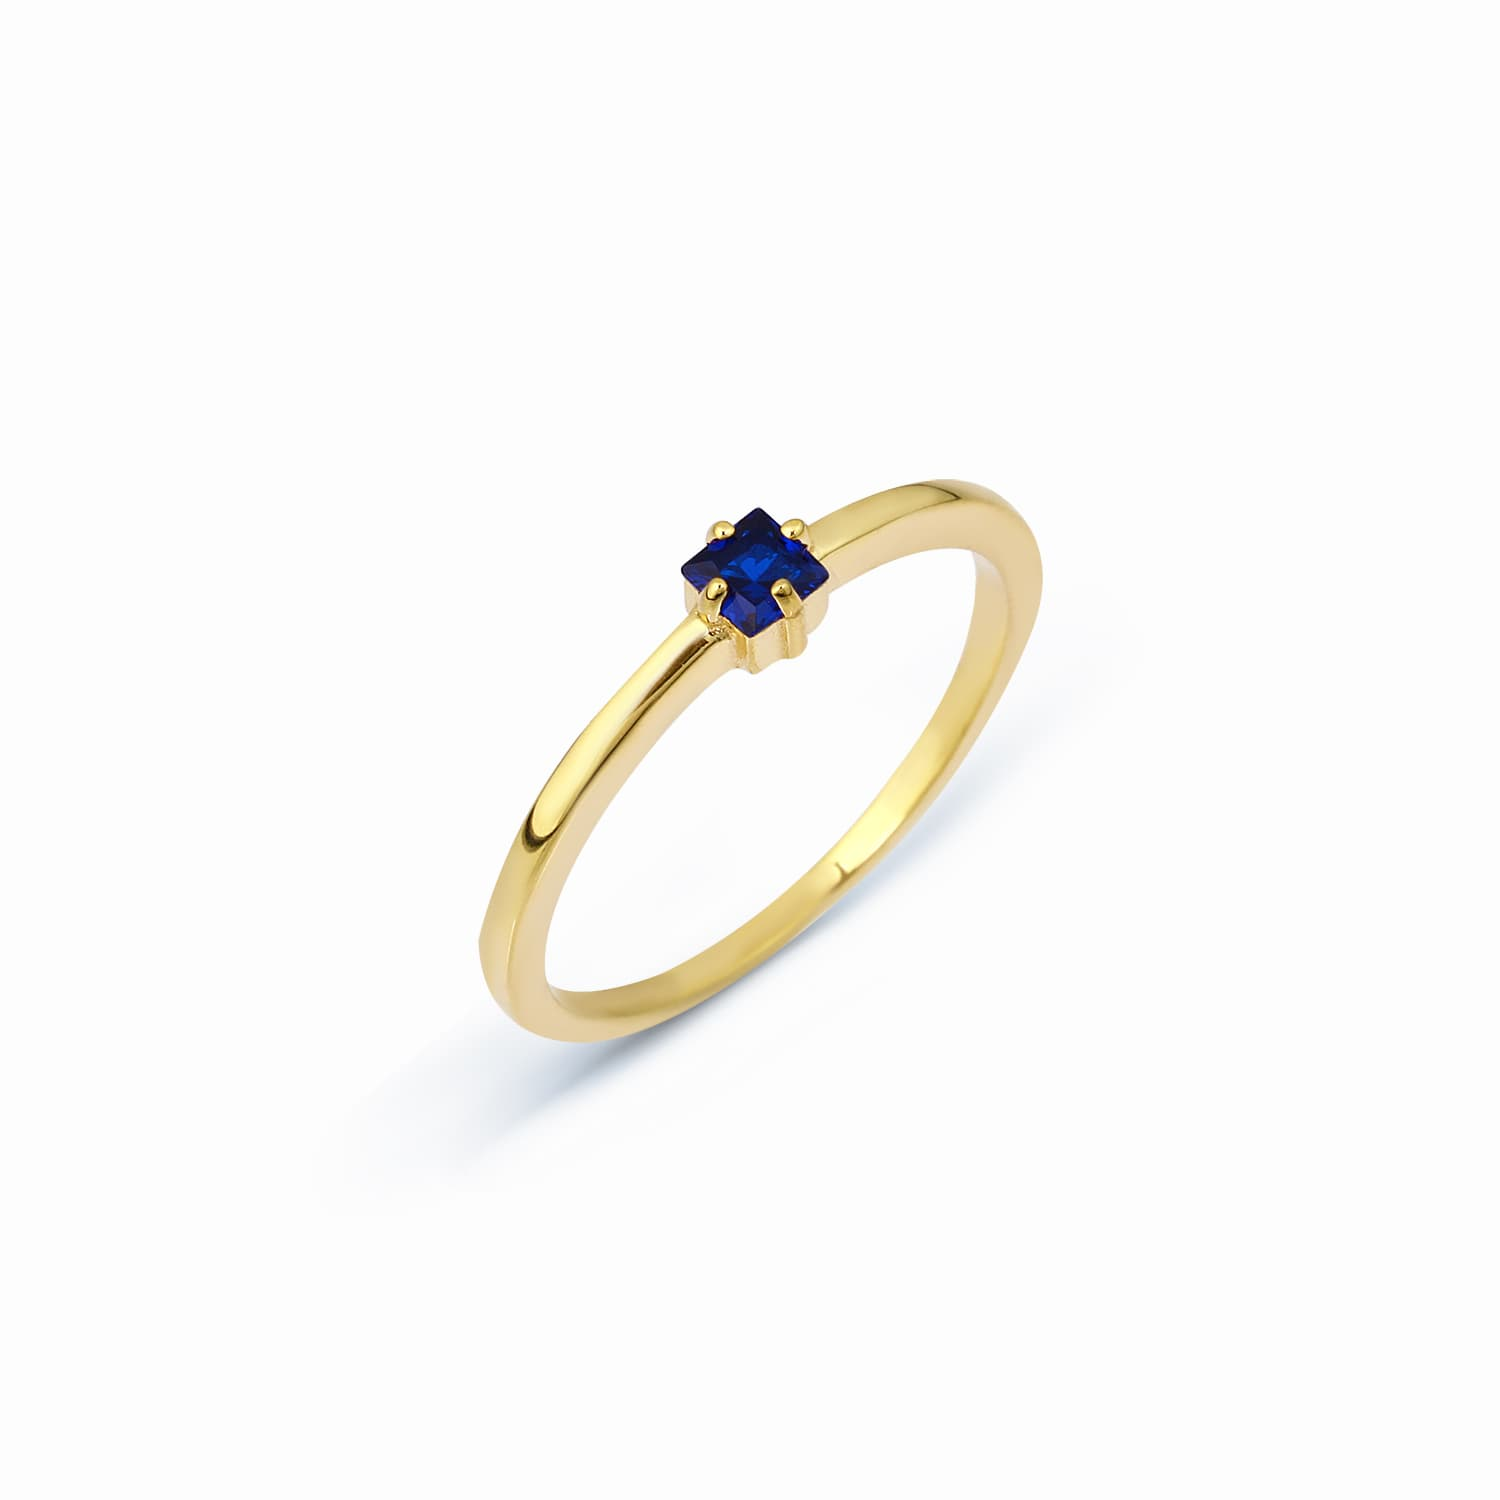 SOLO RING NAVY BLUE